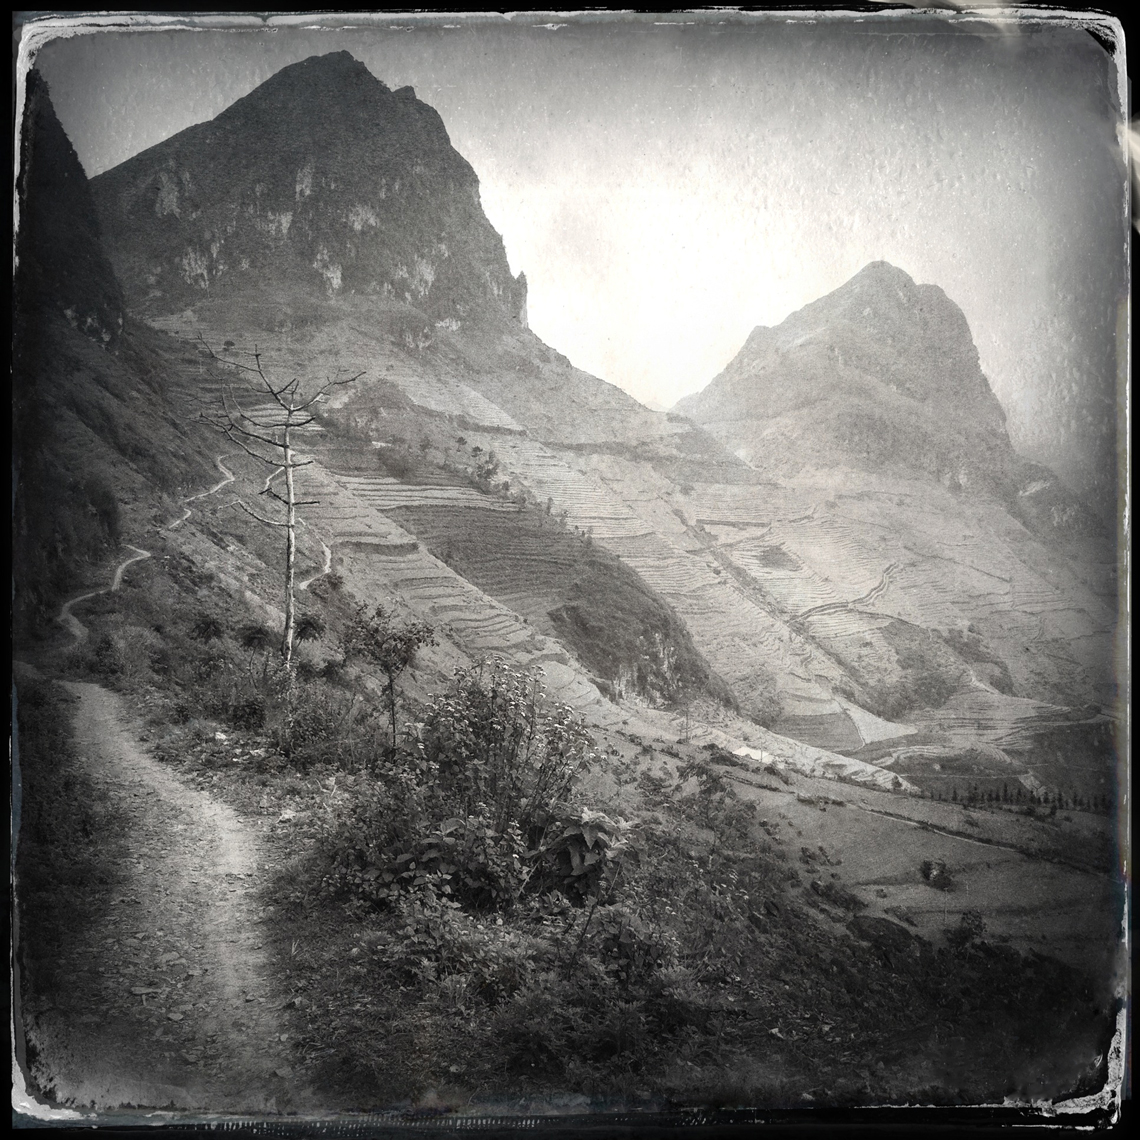 Jon Wyatt Photography - Path near Dong Van, Ha Giang Province, North East Vietnam. Hipstamatic